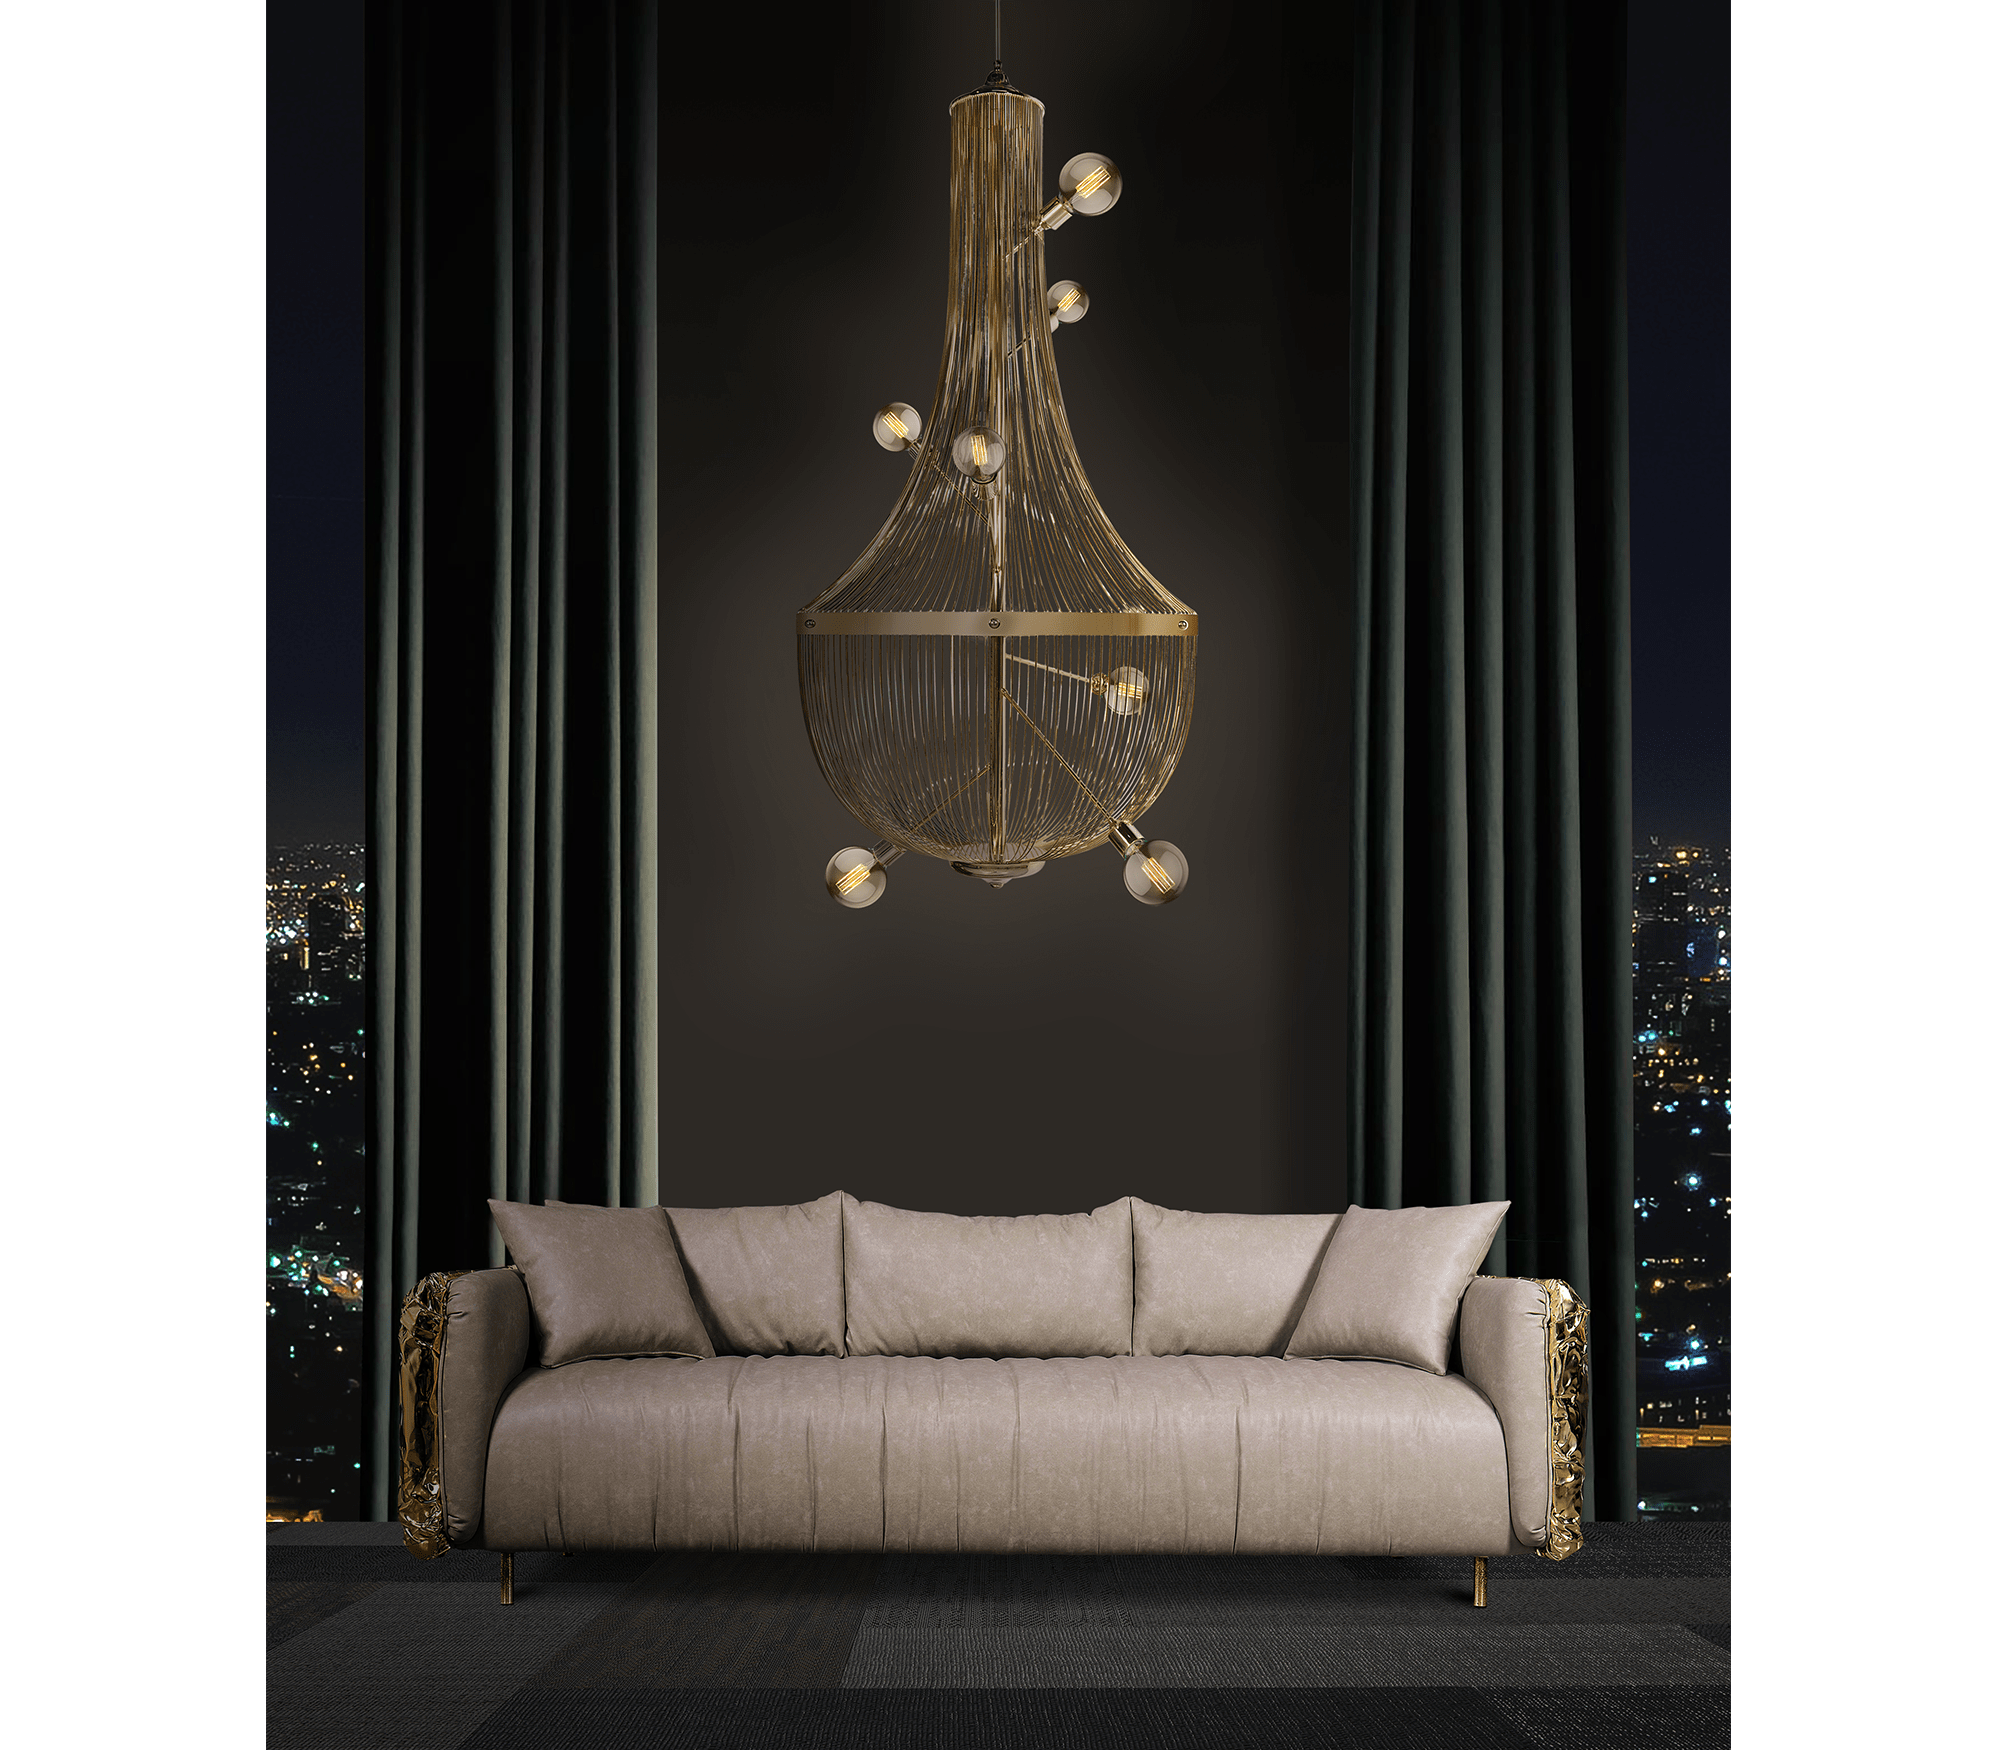 L'Chandelier Suspension Lamp by Boca do Lobo